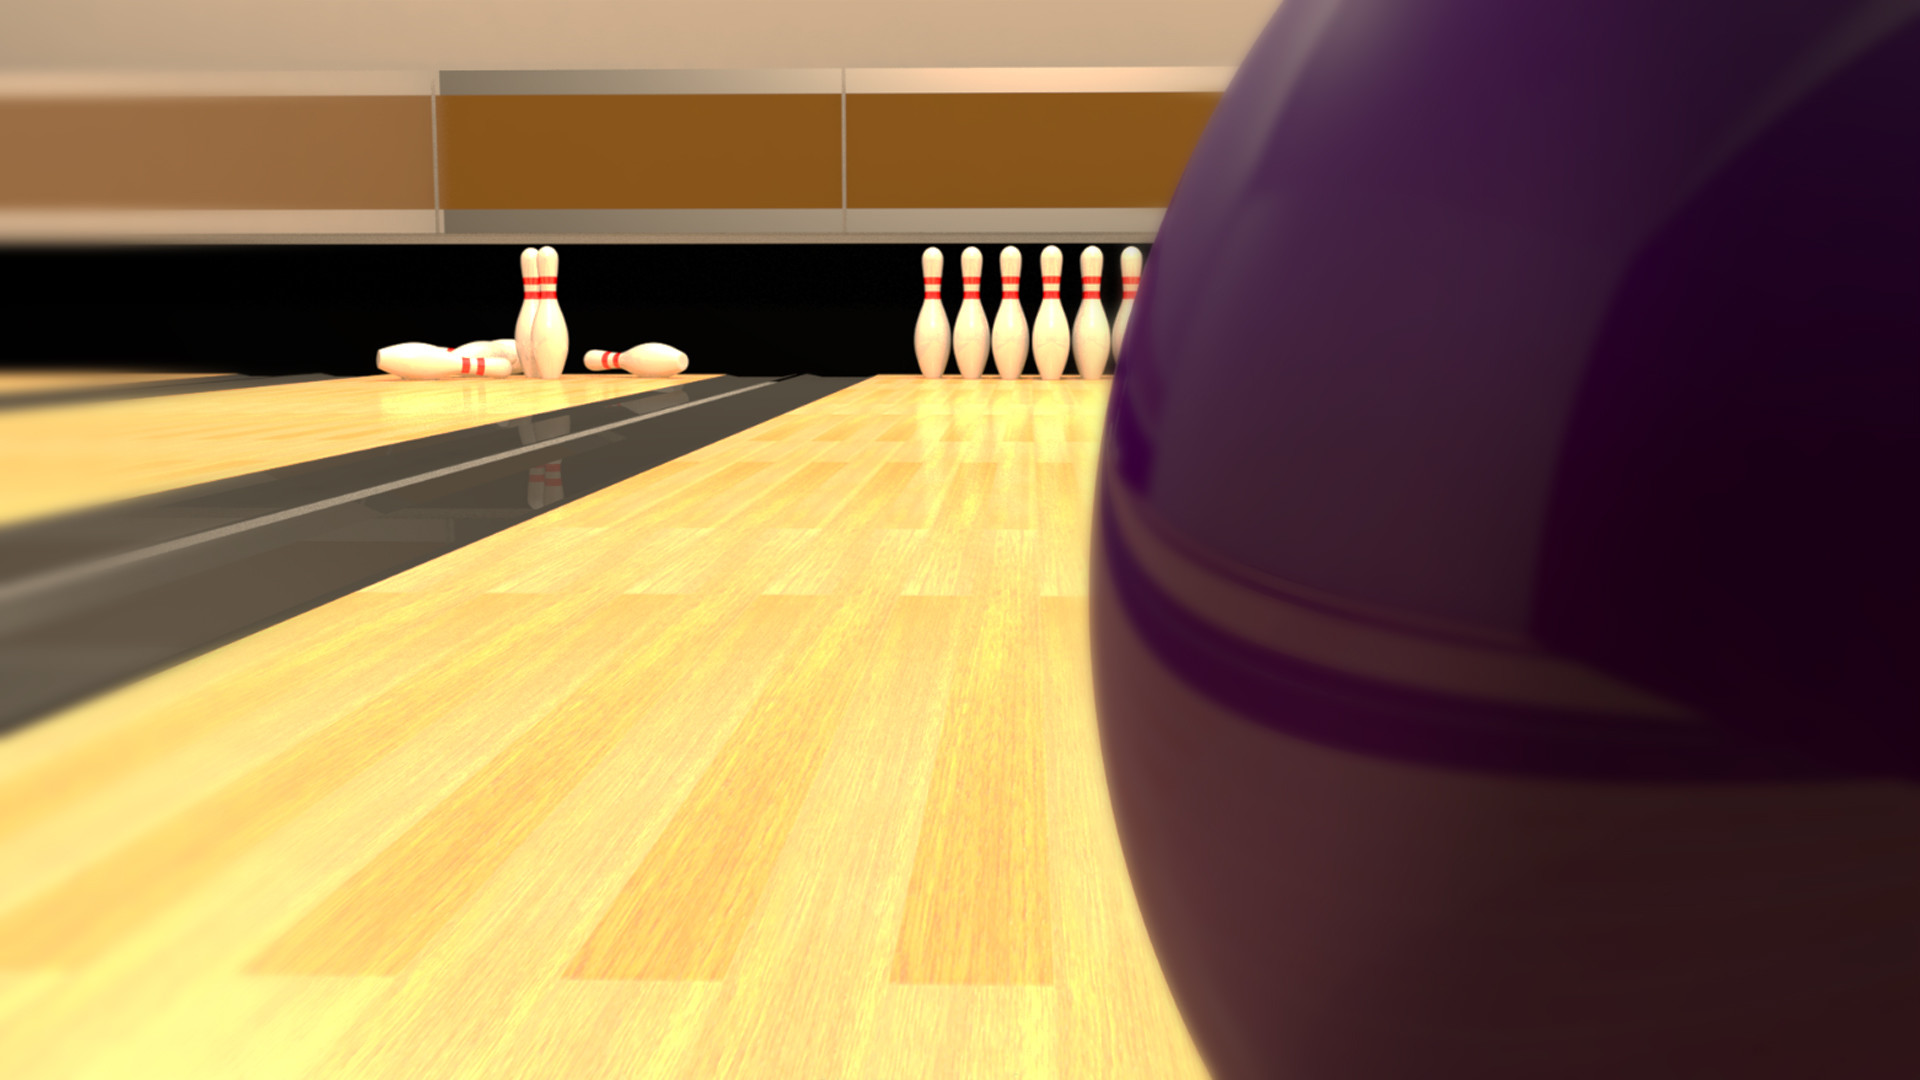 Rajesh sawant bowling alley3